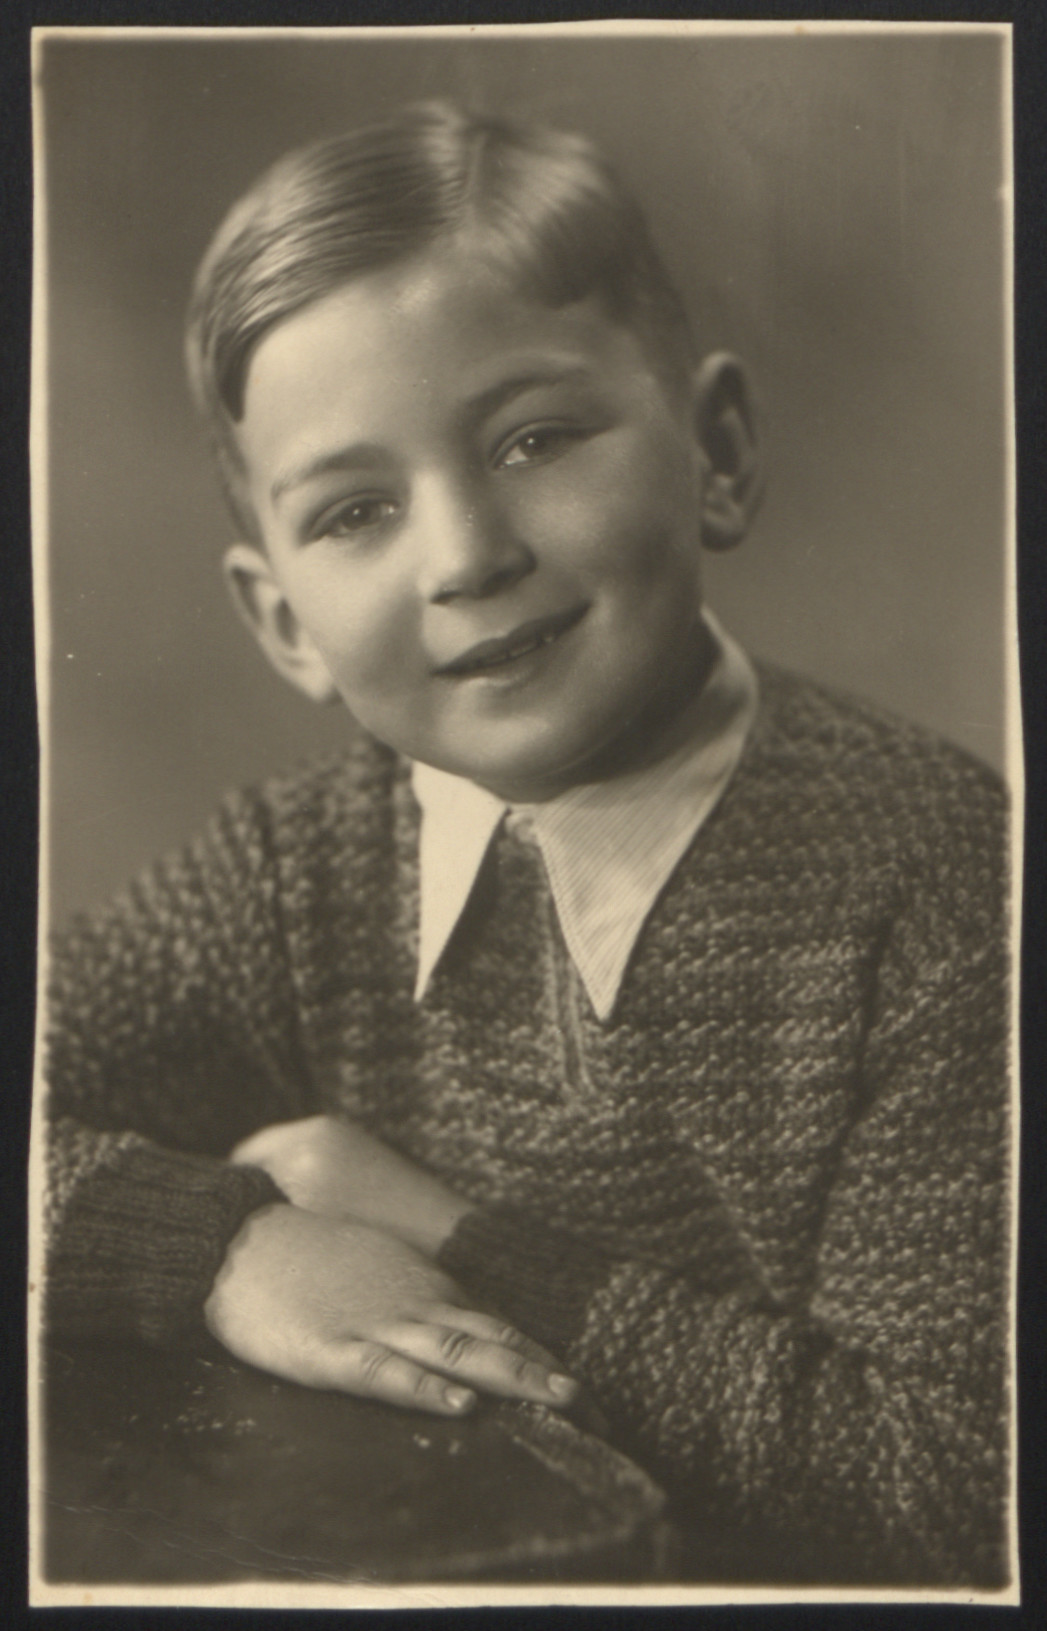 Portrait of eight-year-old Roman Haar while living in hiding in Rzeszow, Poland.